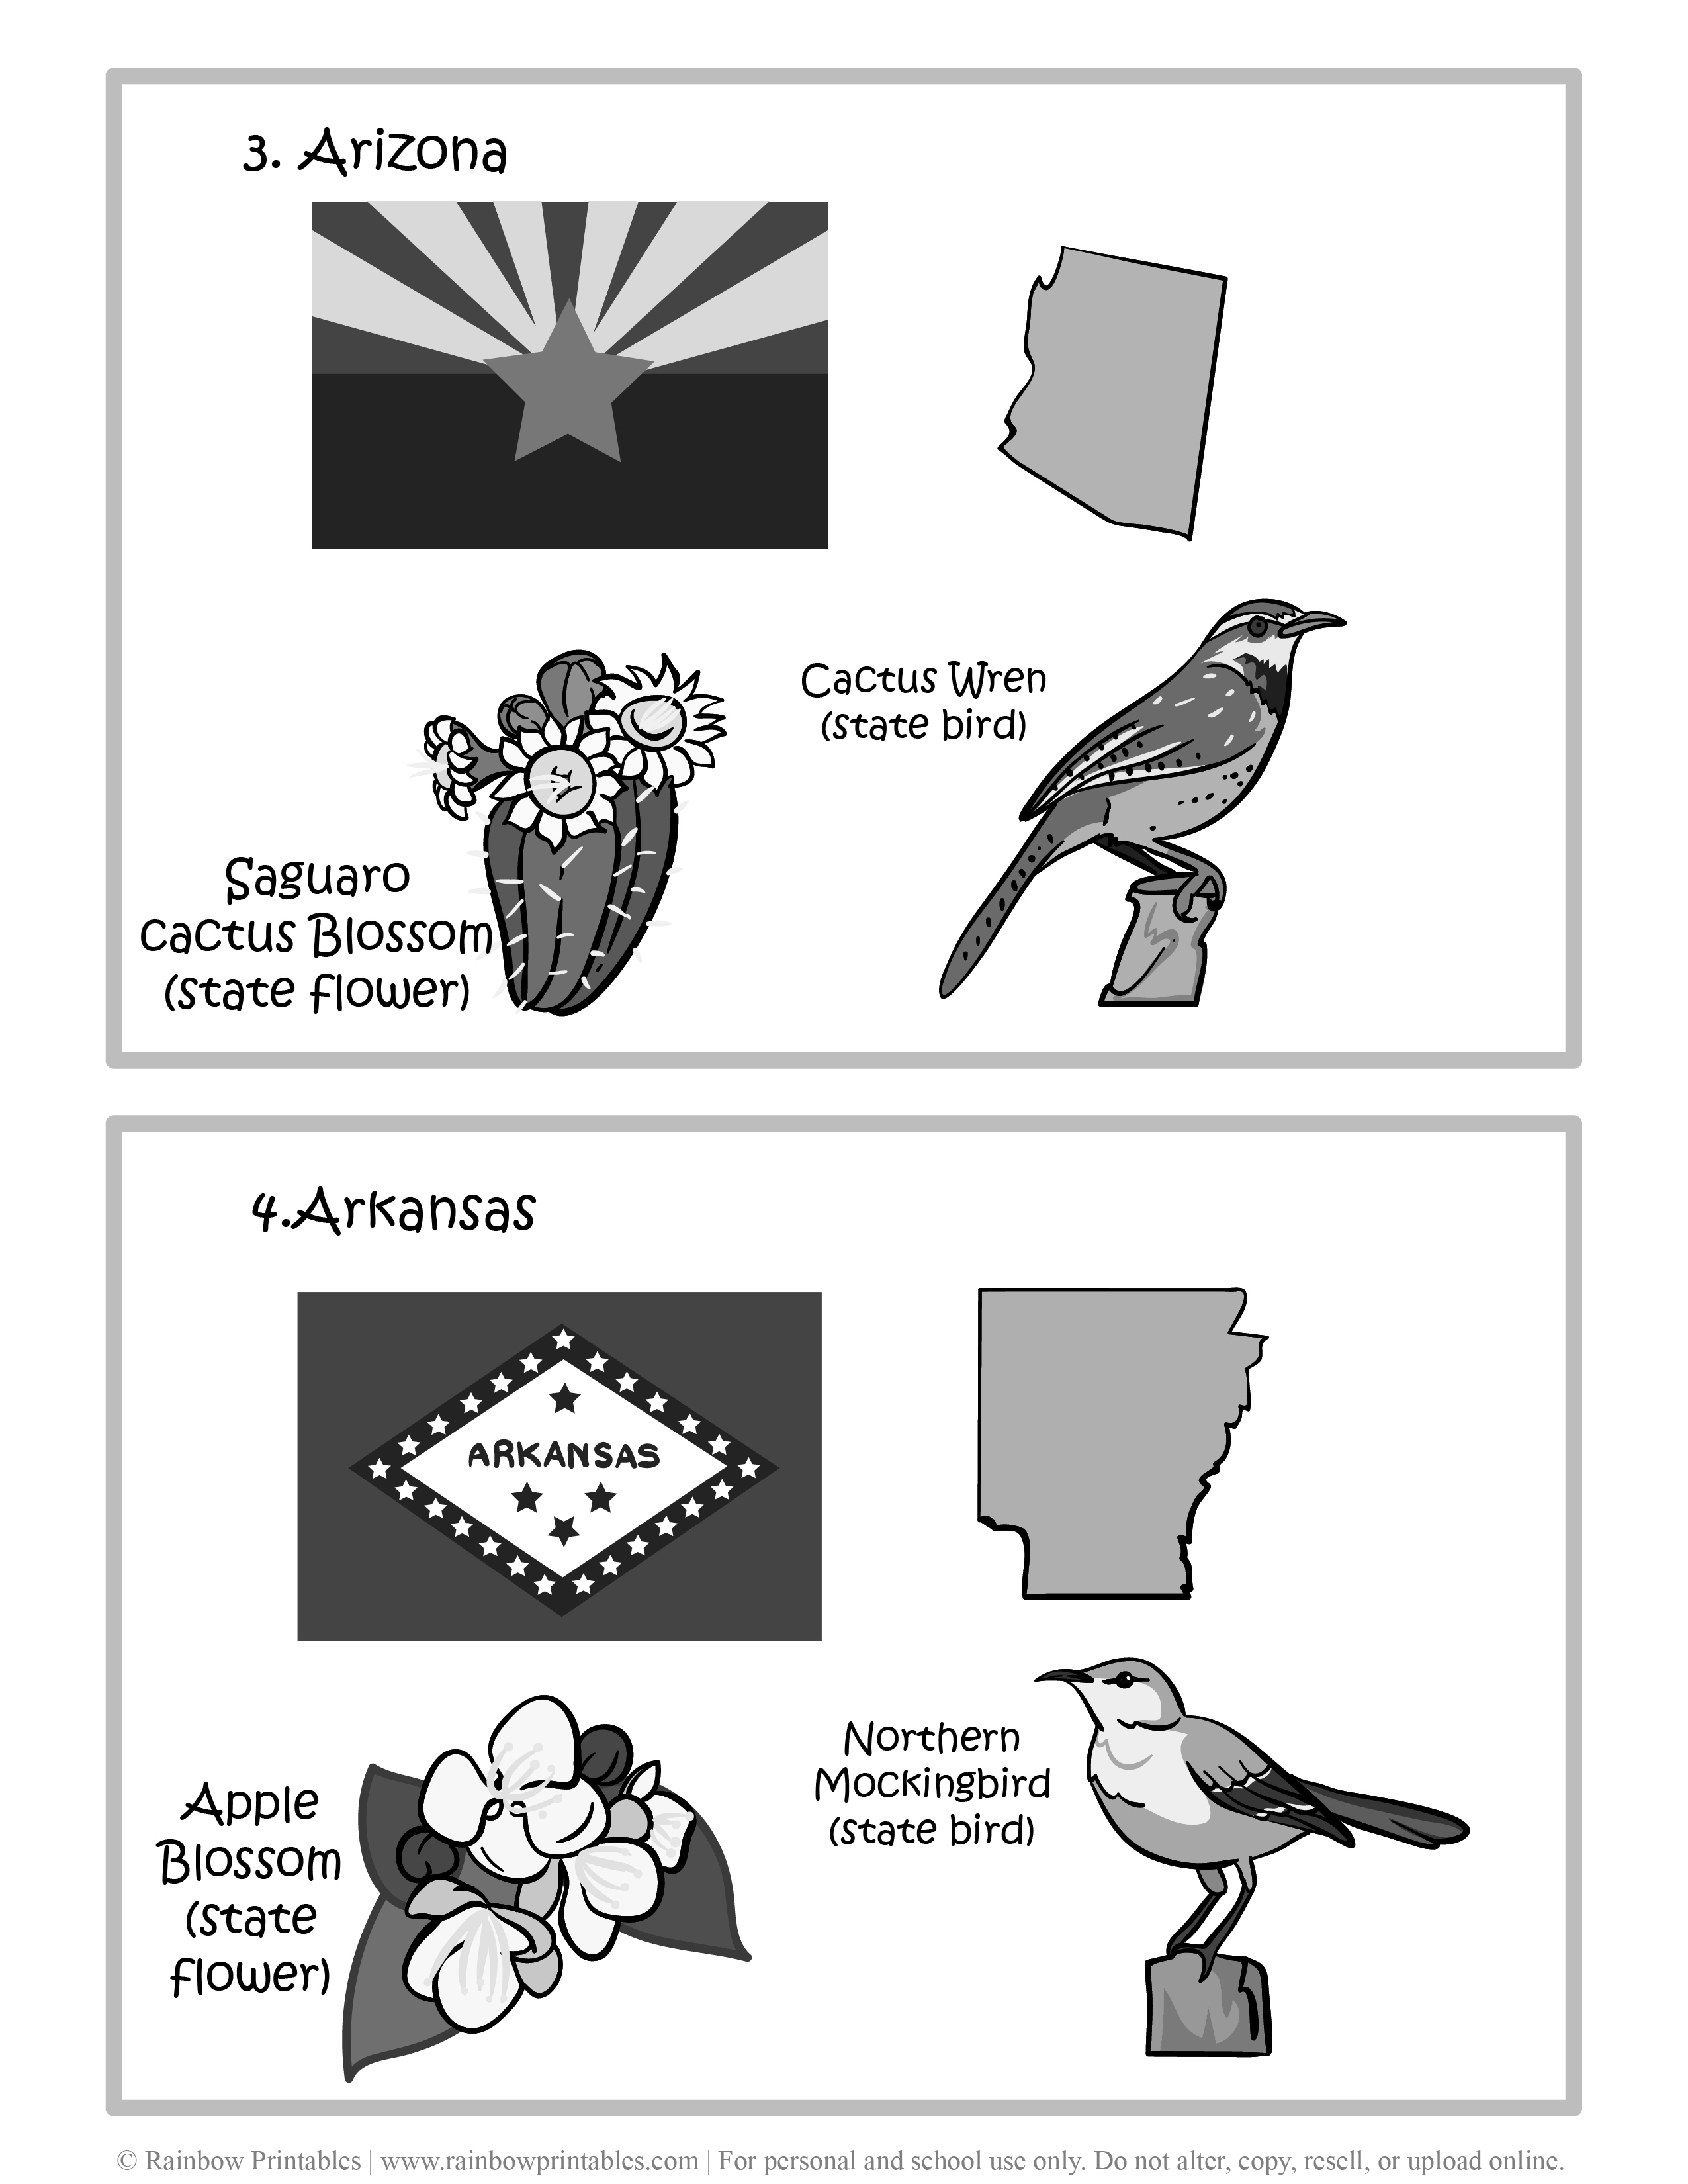 Arizona, Arkansas, 50 US State Flag, State Bird, State Flower, United States of America - American States Geography Worksheet Class Lesson Printables Flashcards Black White